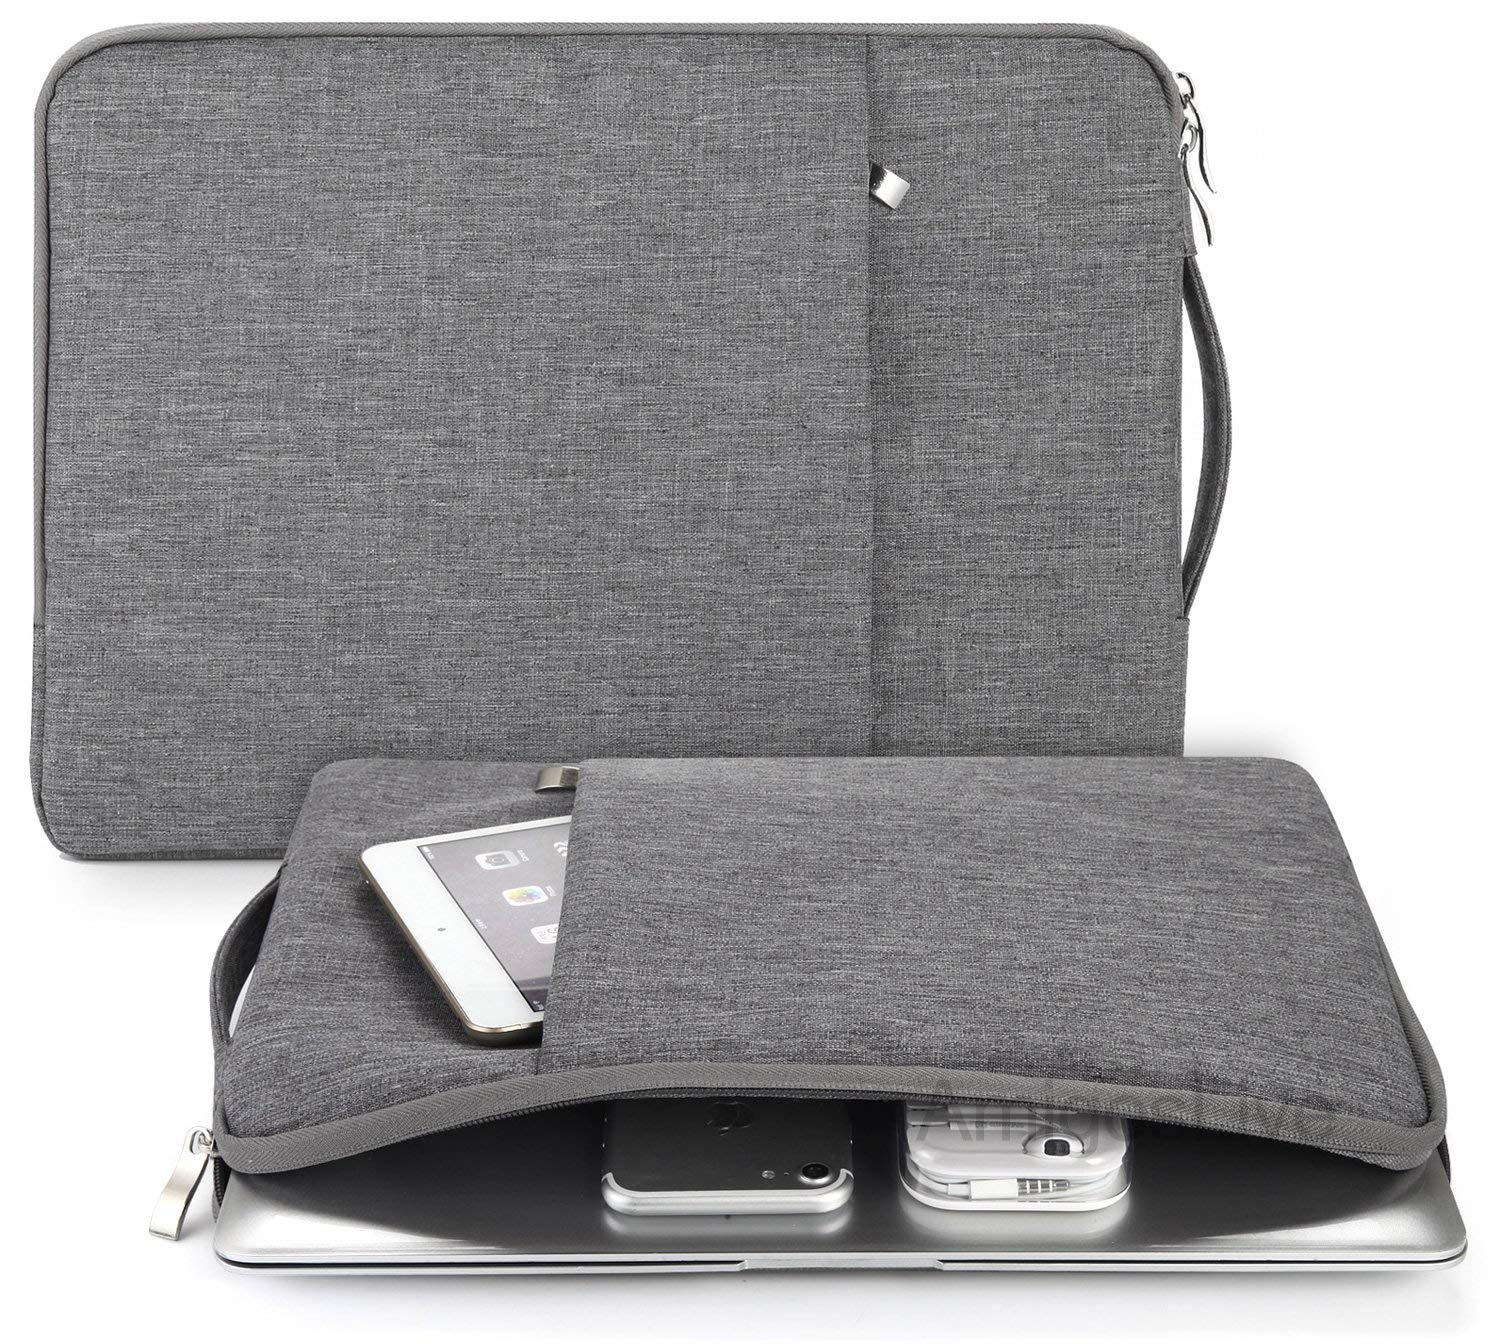 """2019 New Brand Greliana Sleeve Case For Laptop 11"""",13"""",14"""",15,15.6 inch,Bag For Macbook Air Pro 13.3"""",15.4"""",Free Drop Shipping"""